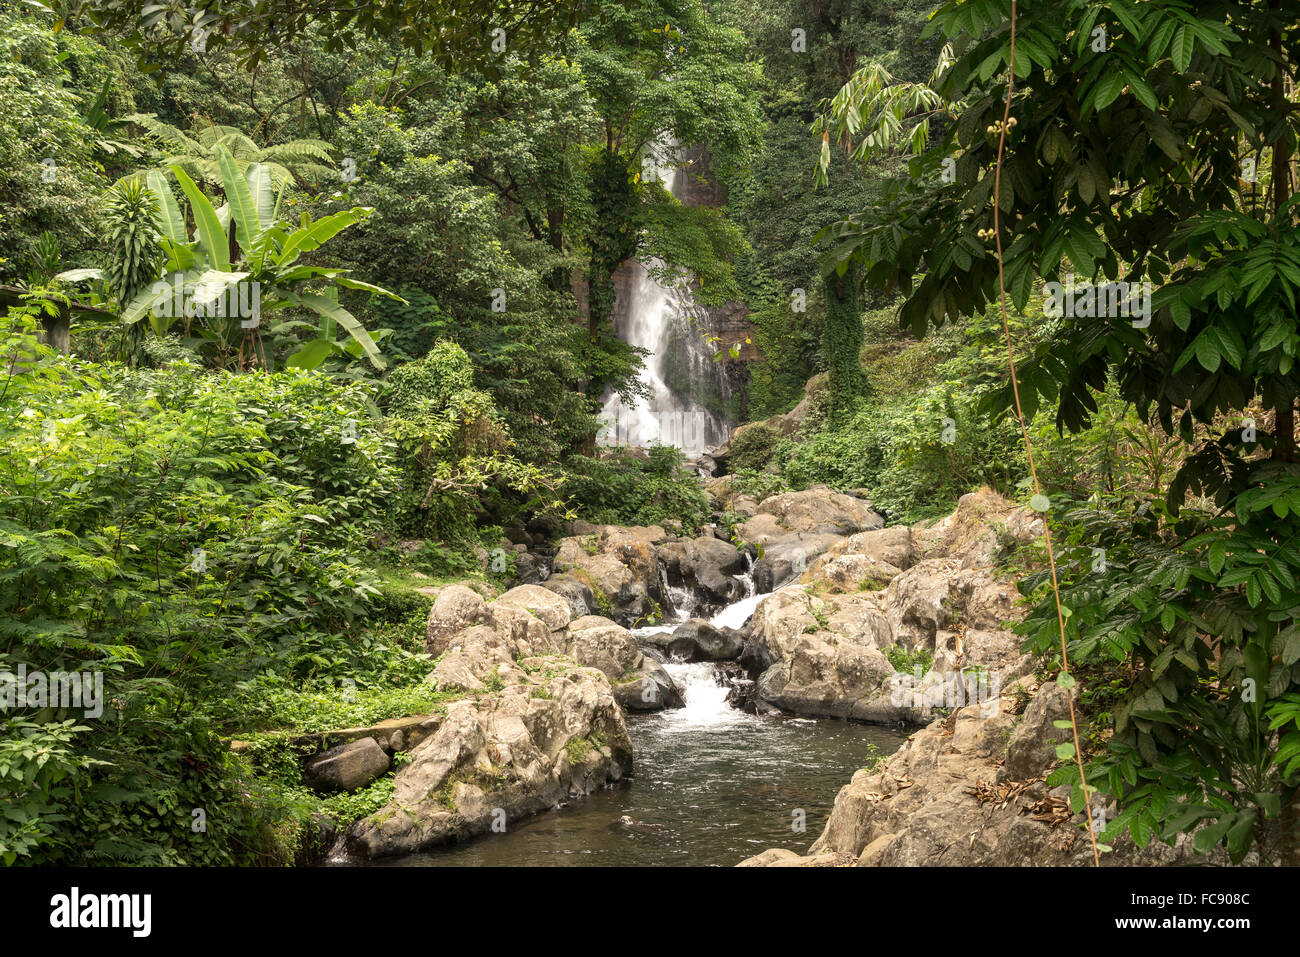 tourists watching the Gitgit Waterfall, Bali, Indonesia Stock Photo